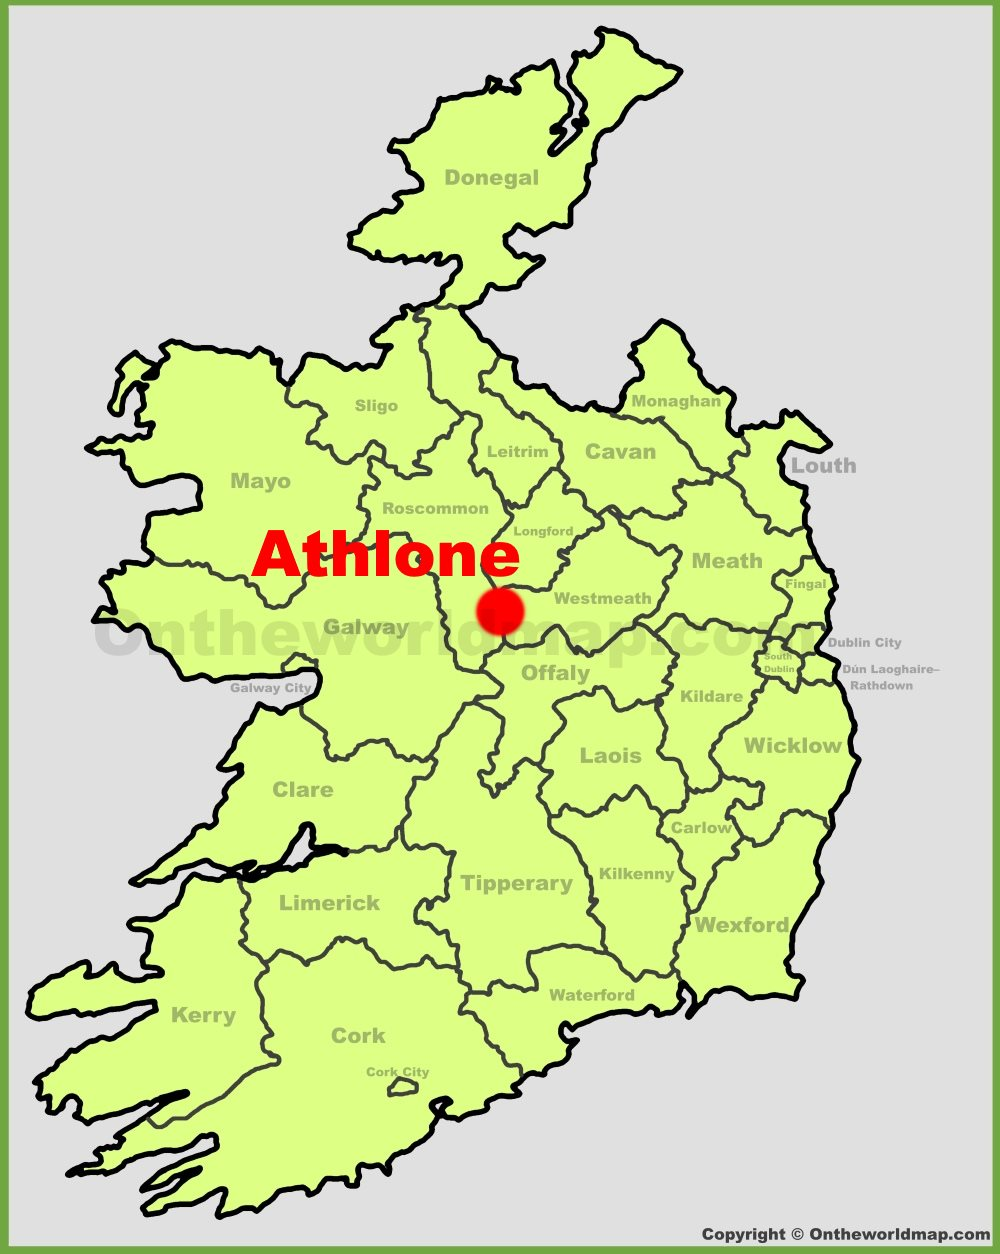 Map Of Ireland Showing Athlone.Athlone Location On The Ireland Map